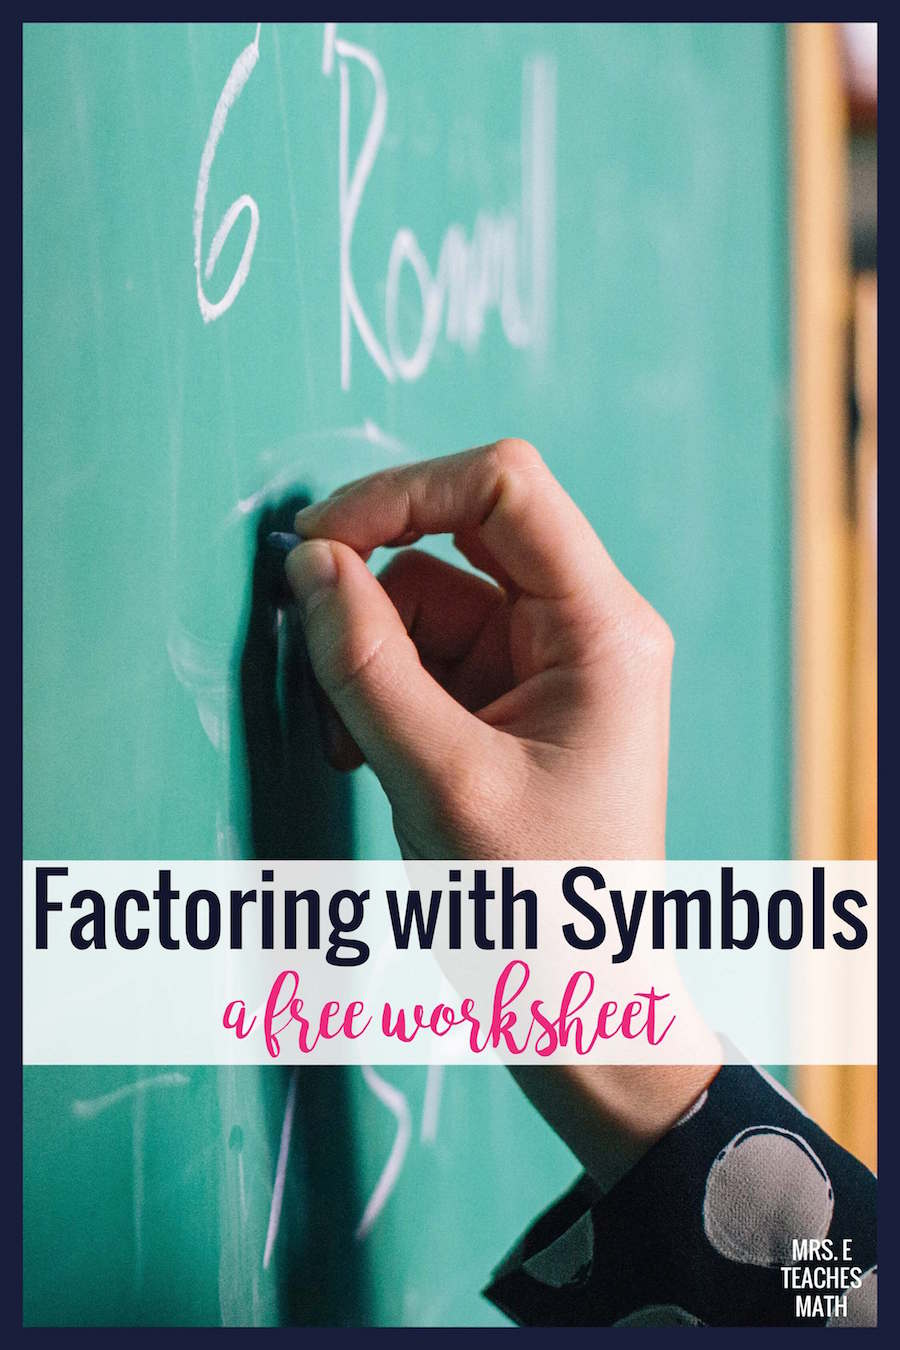 Factoring with Symbols | Mrs. E Teaches Math